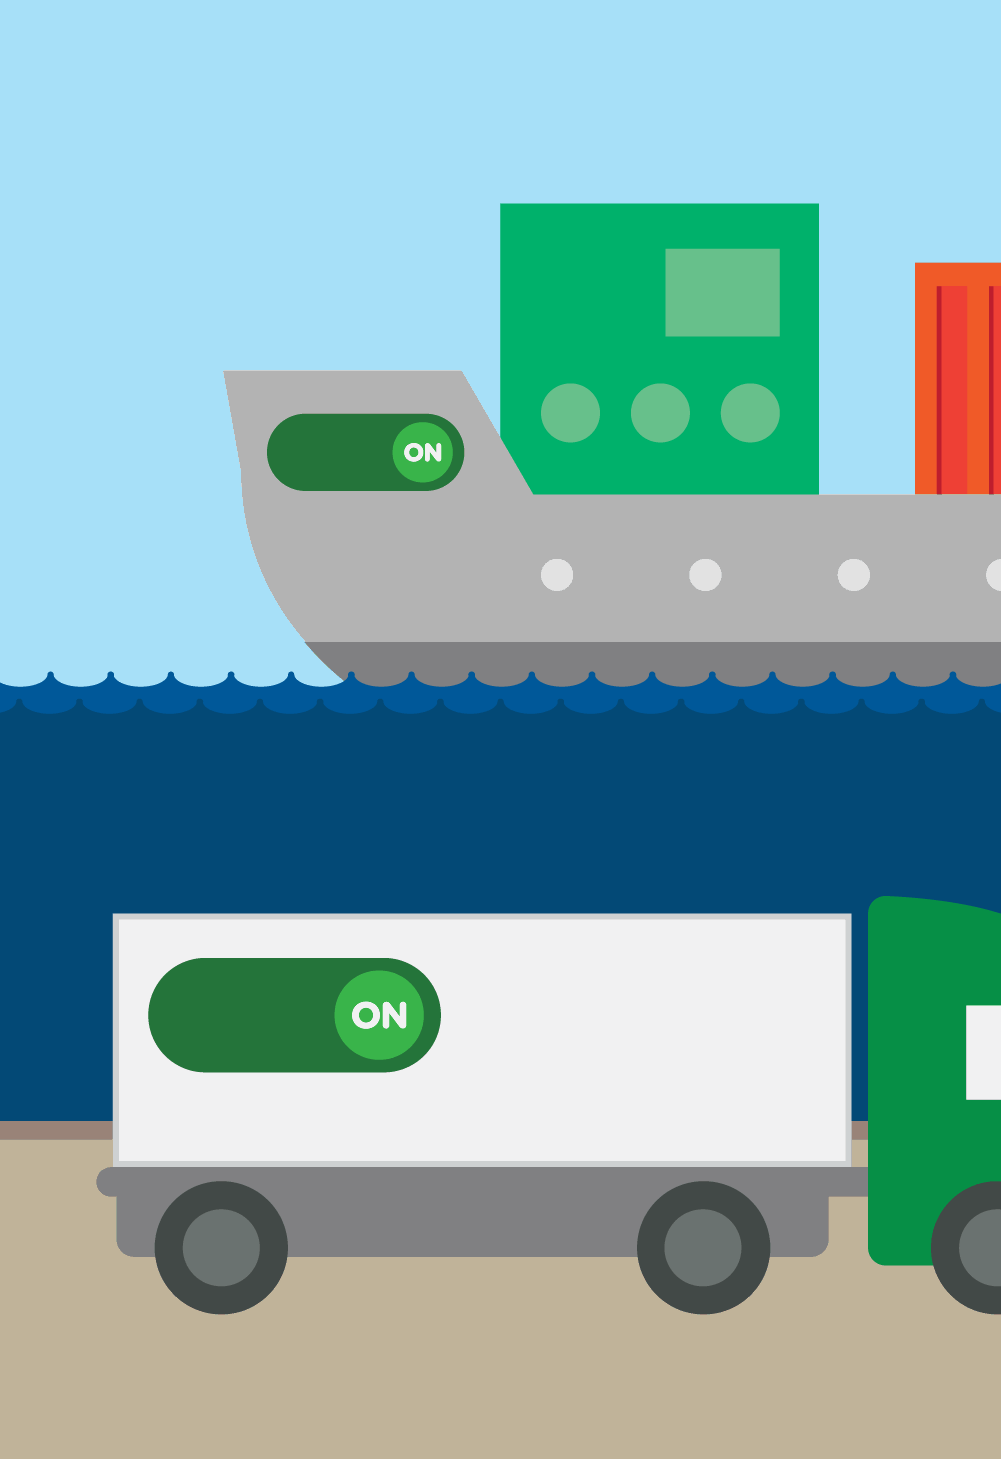 Ship and truck switching fuel to LNG/LBG